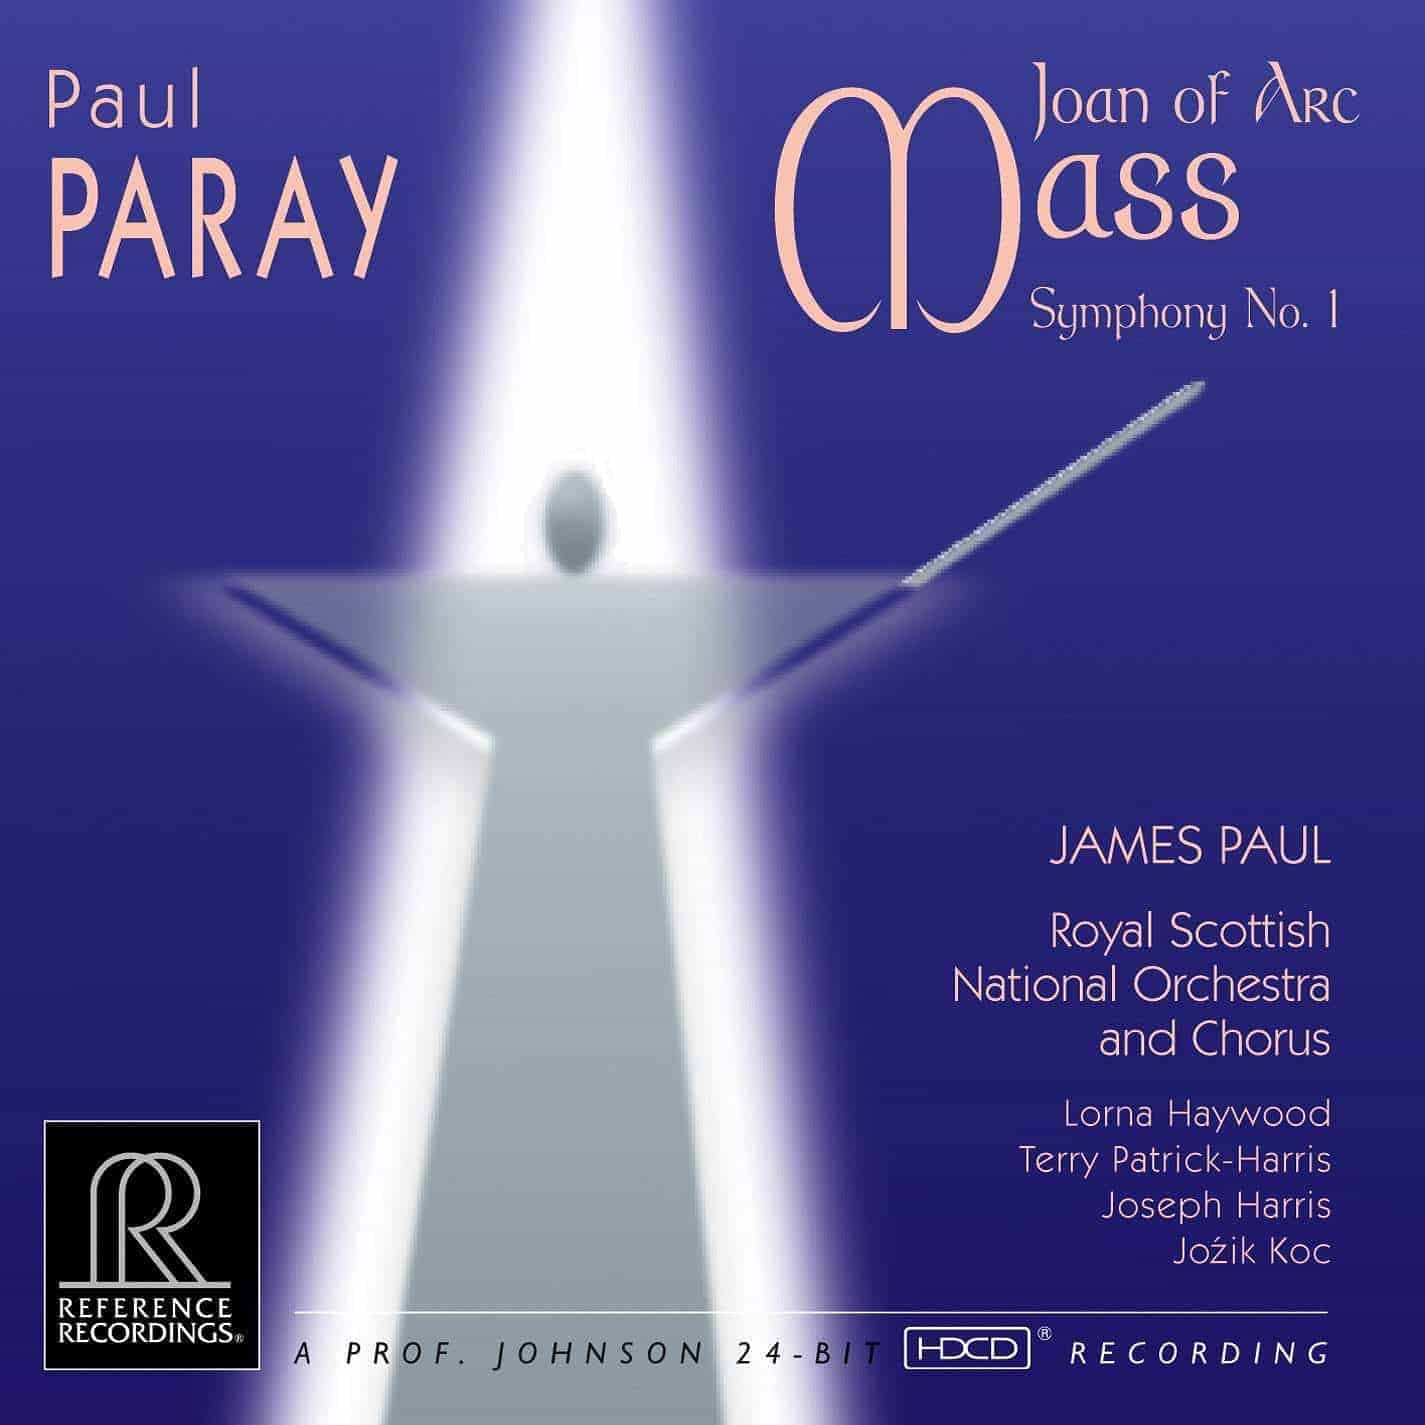 Paray: Joan of Arc Mass